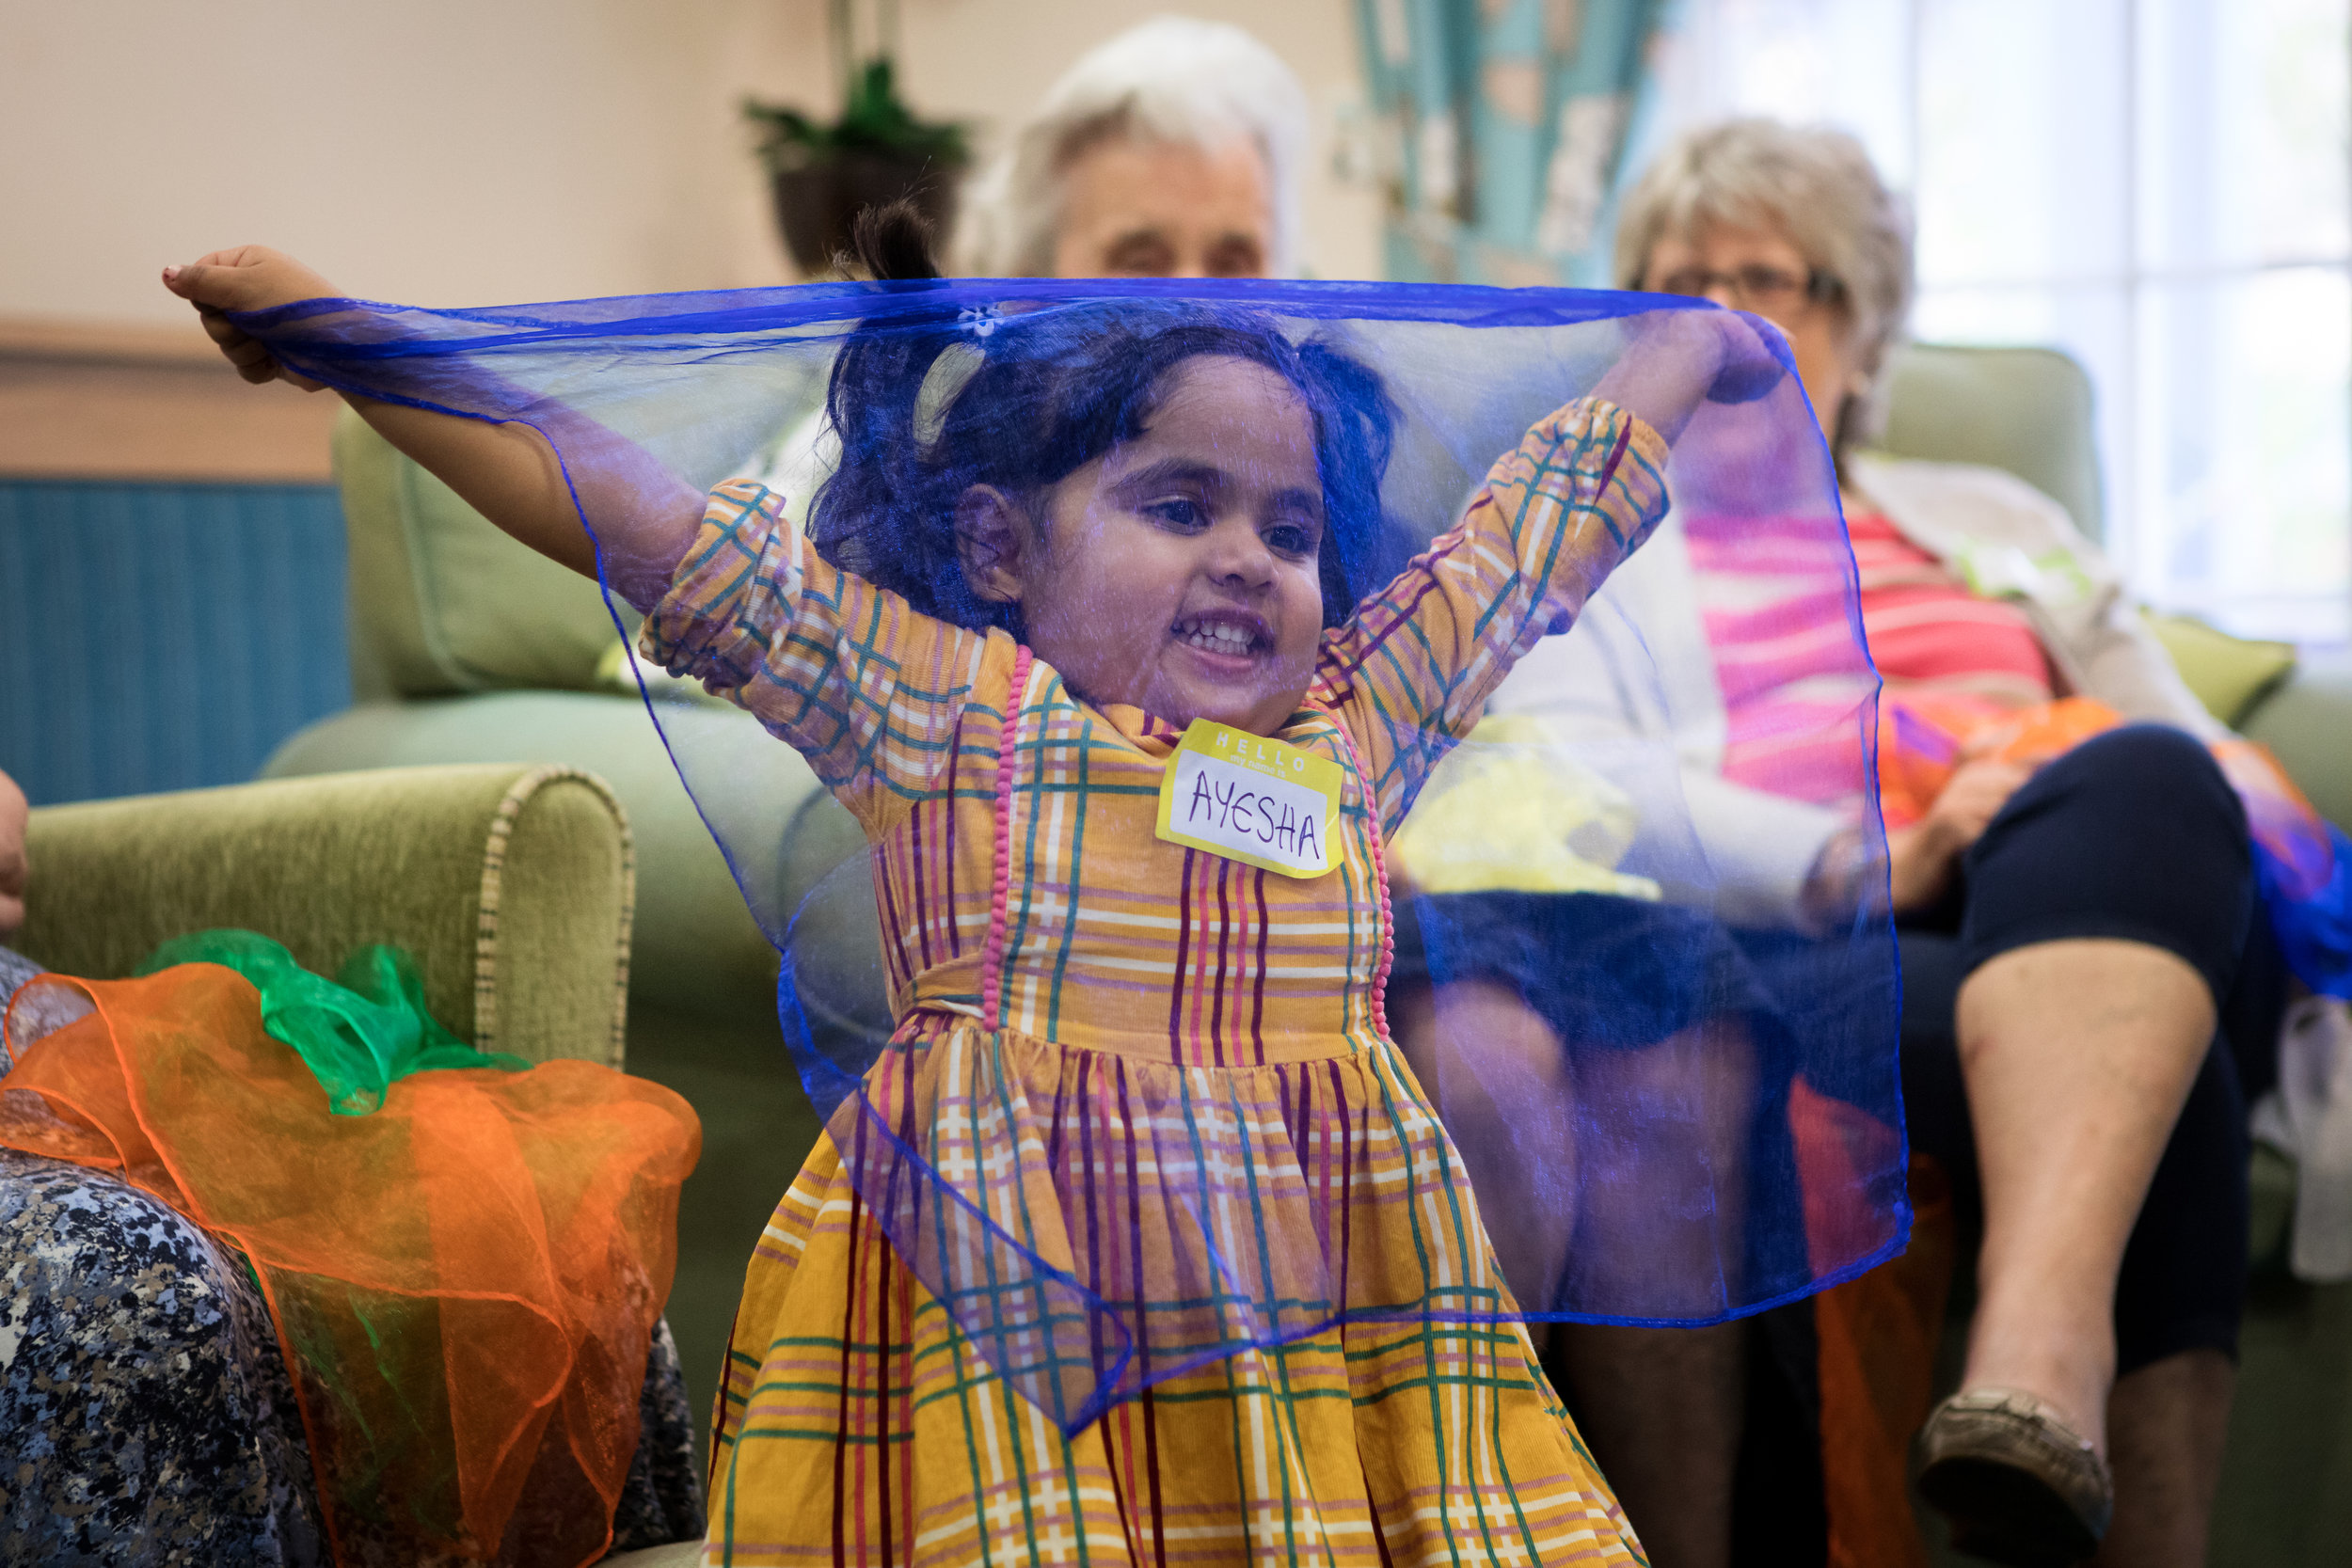 Give a set of coloured scarves - £12We will use these every week at Songs & Smiles to dance, wave and play Peekaboo with! It's one of the best-loved parts of the session and encourages interaction between all ages.